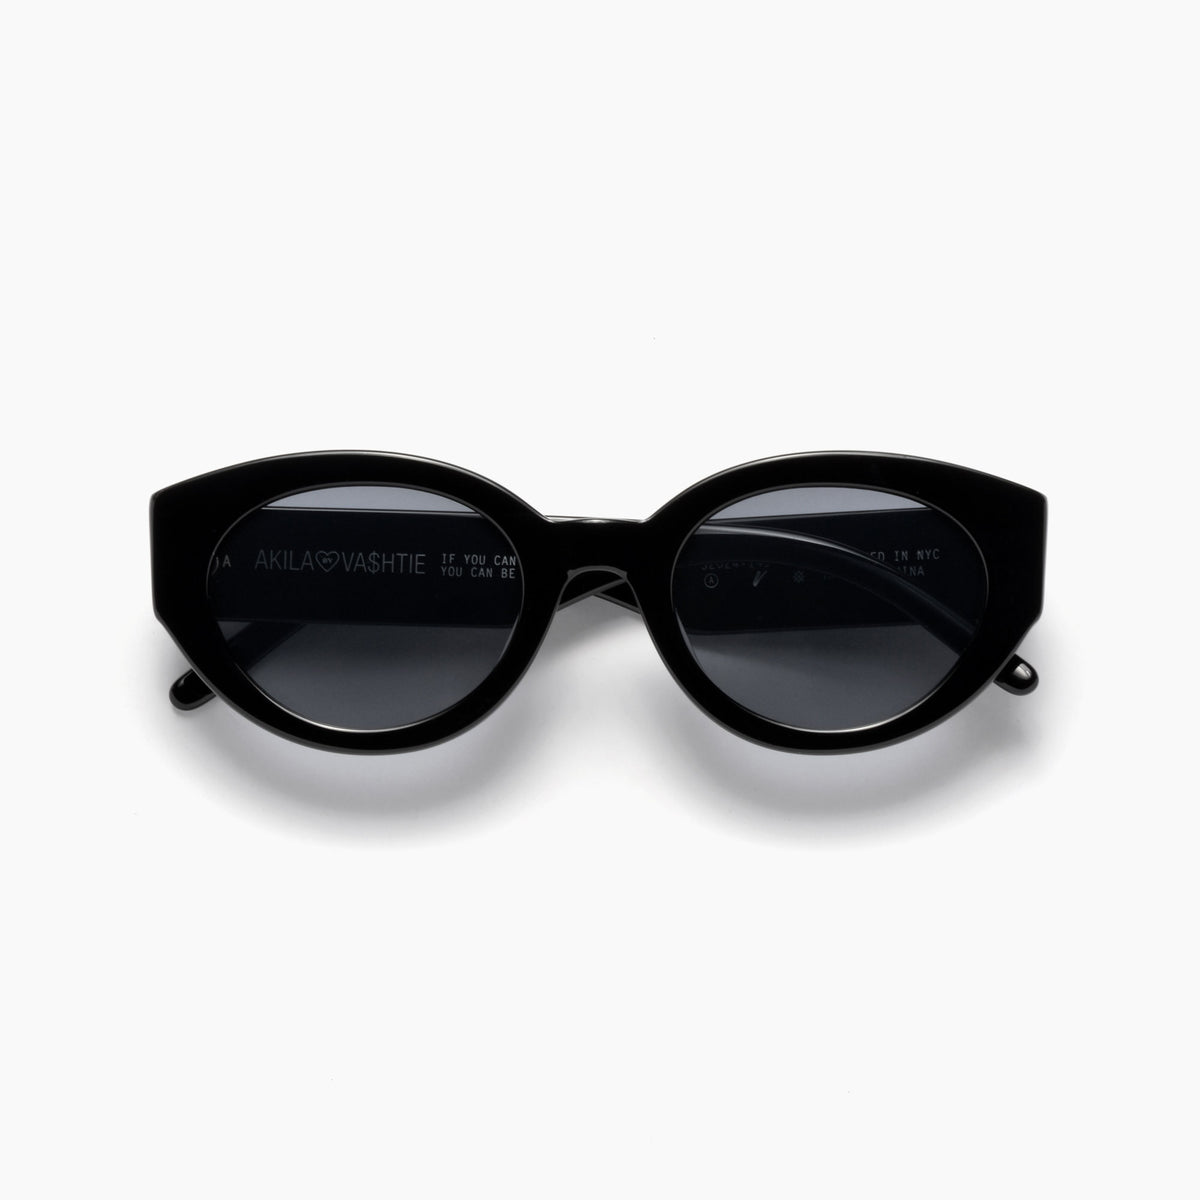 Akila Eyewear Abstract Sunglasses in Black / Black